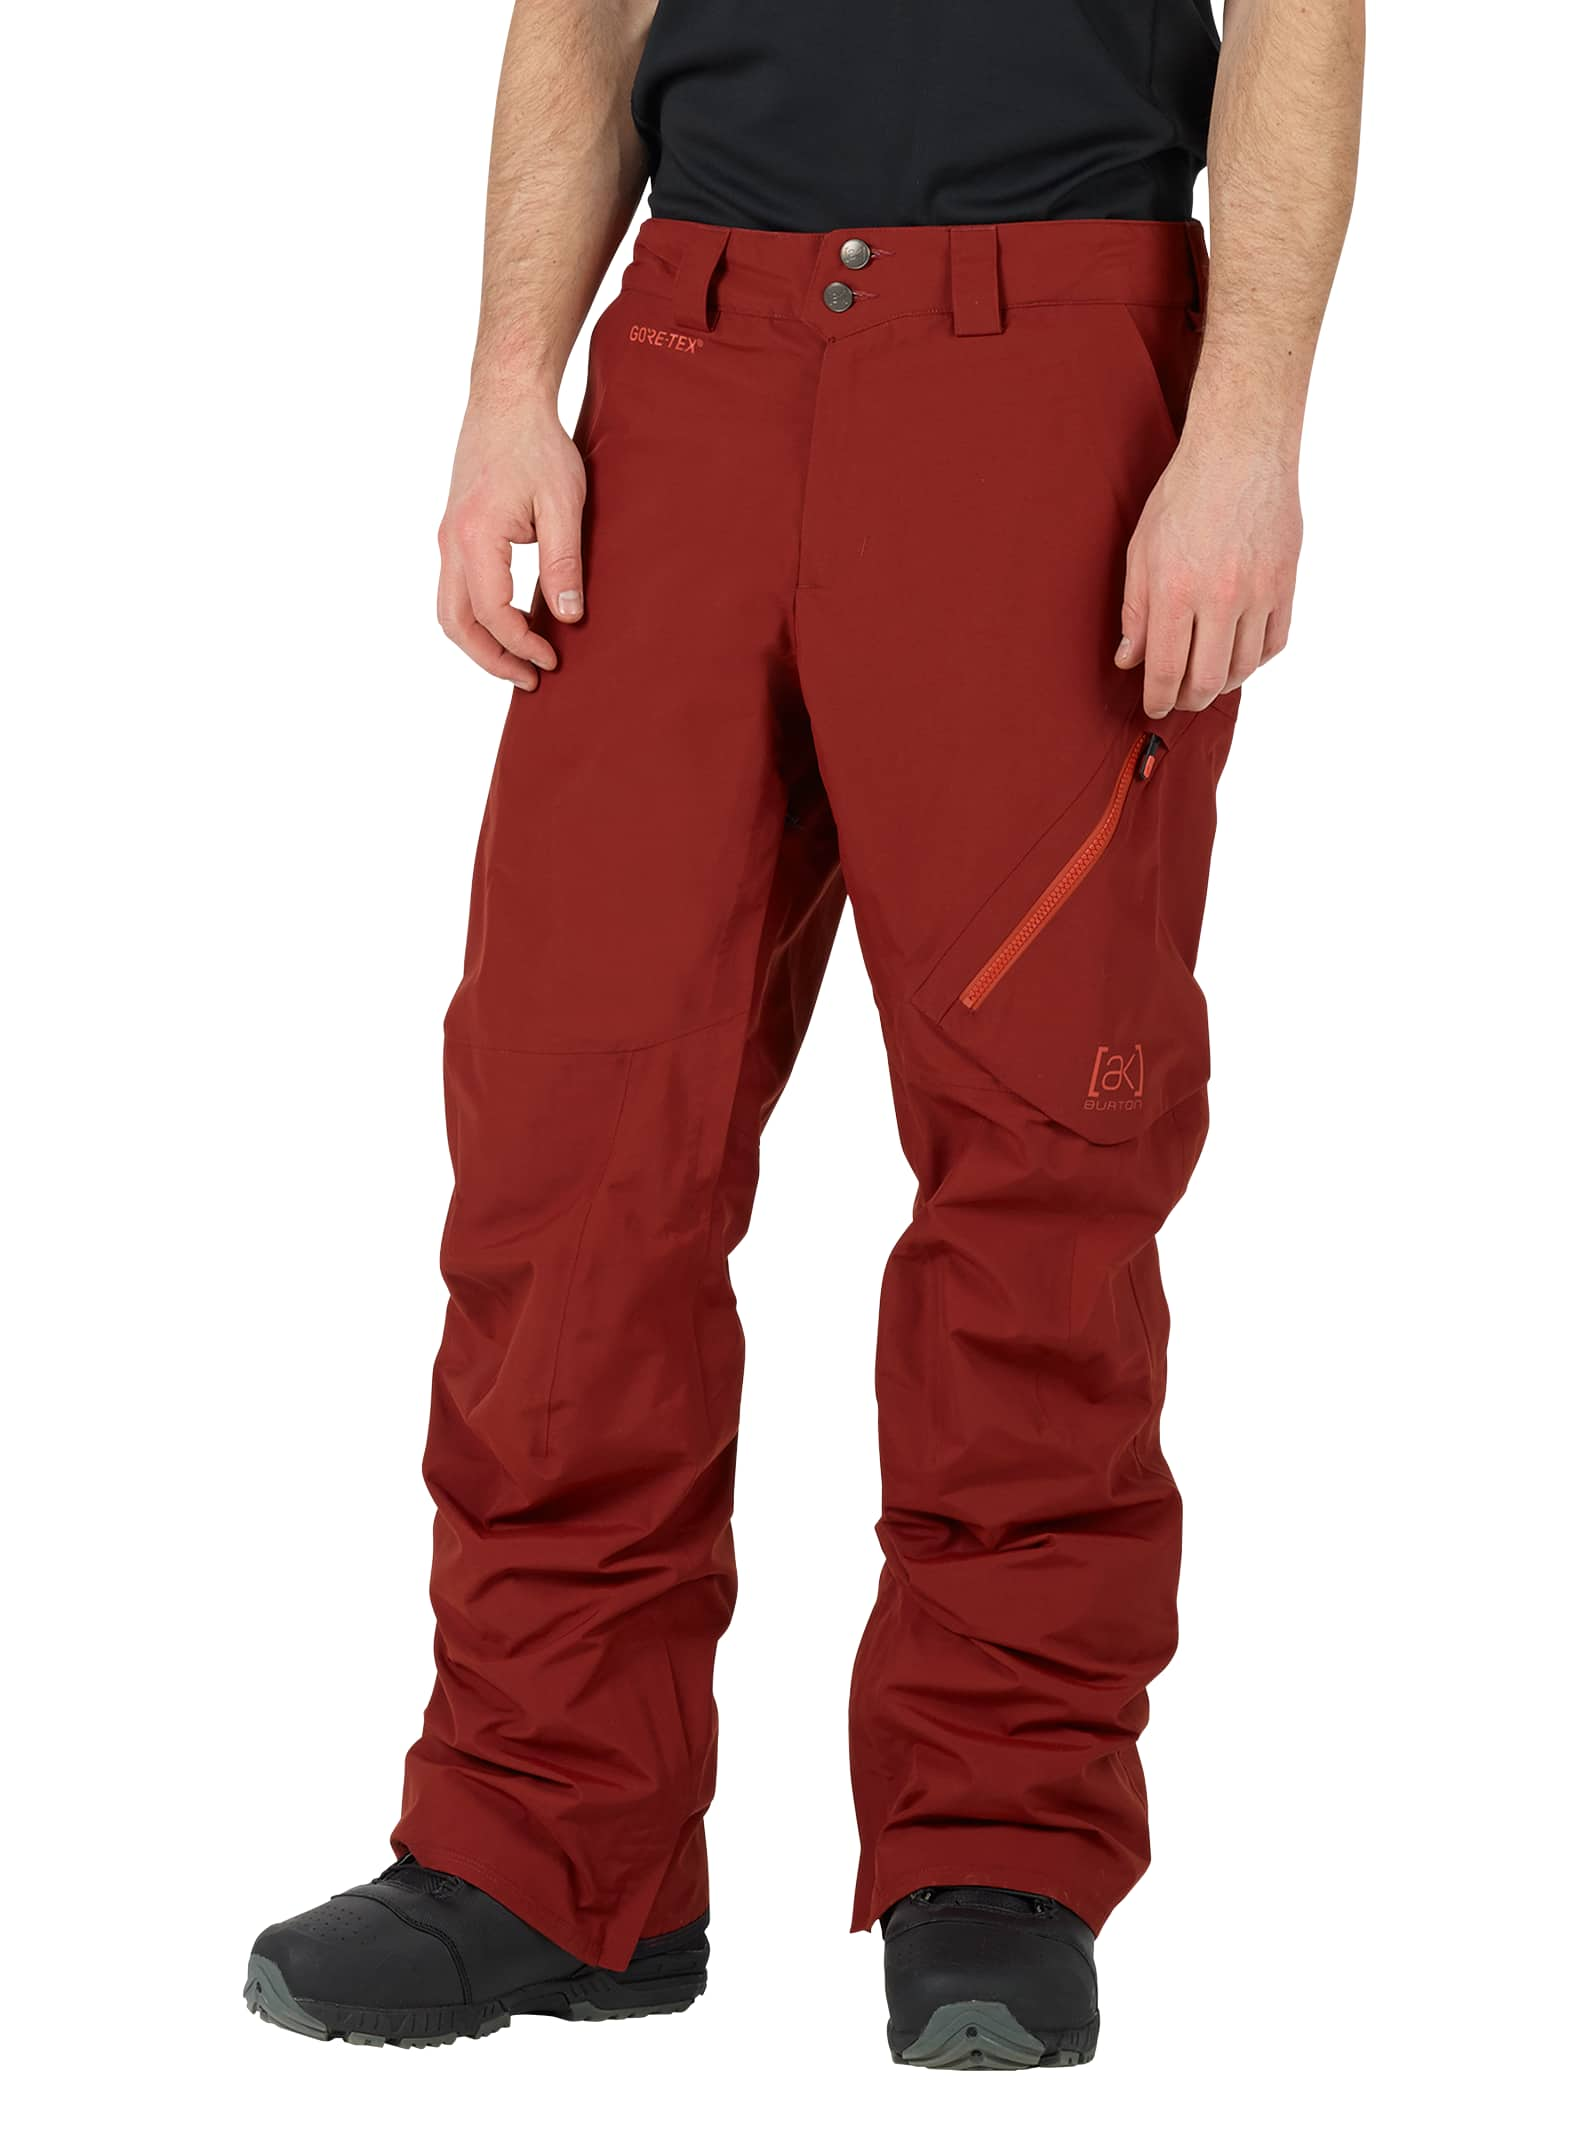 Rote hose out